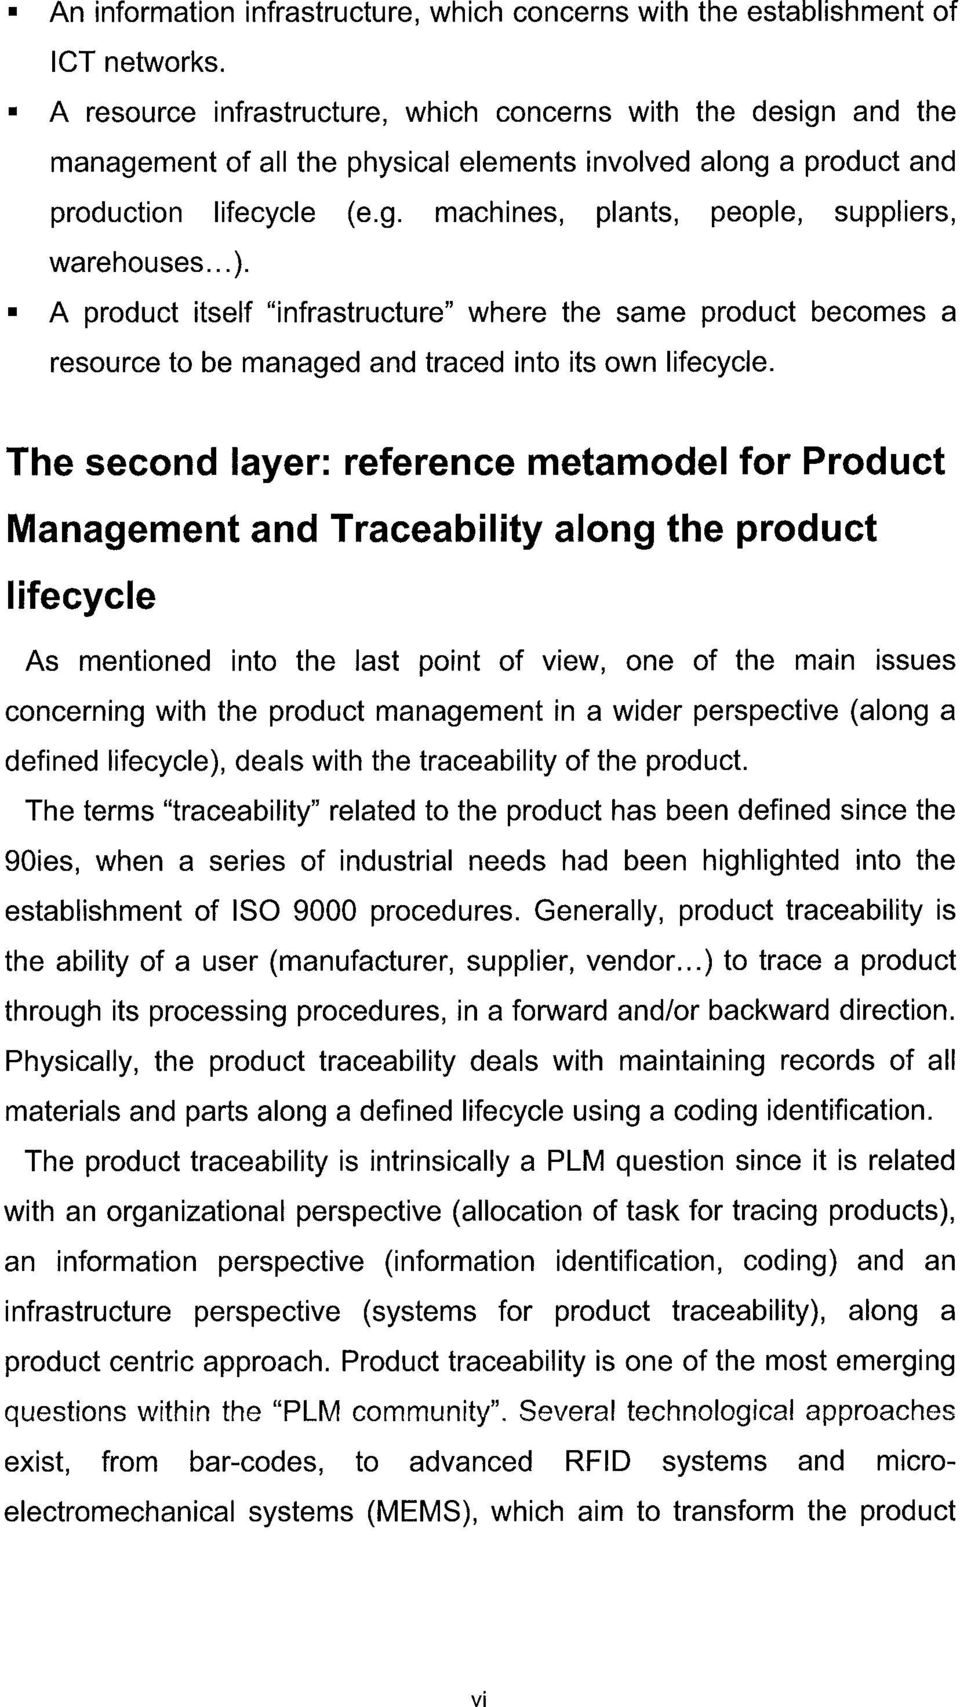 ".. ). A product itself ""infrastructure"" where the same product becomes a resource to be managed and traced into its own lifecycle."